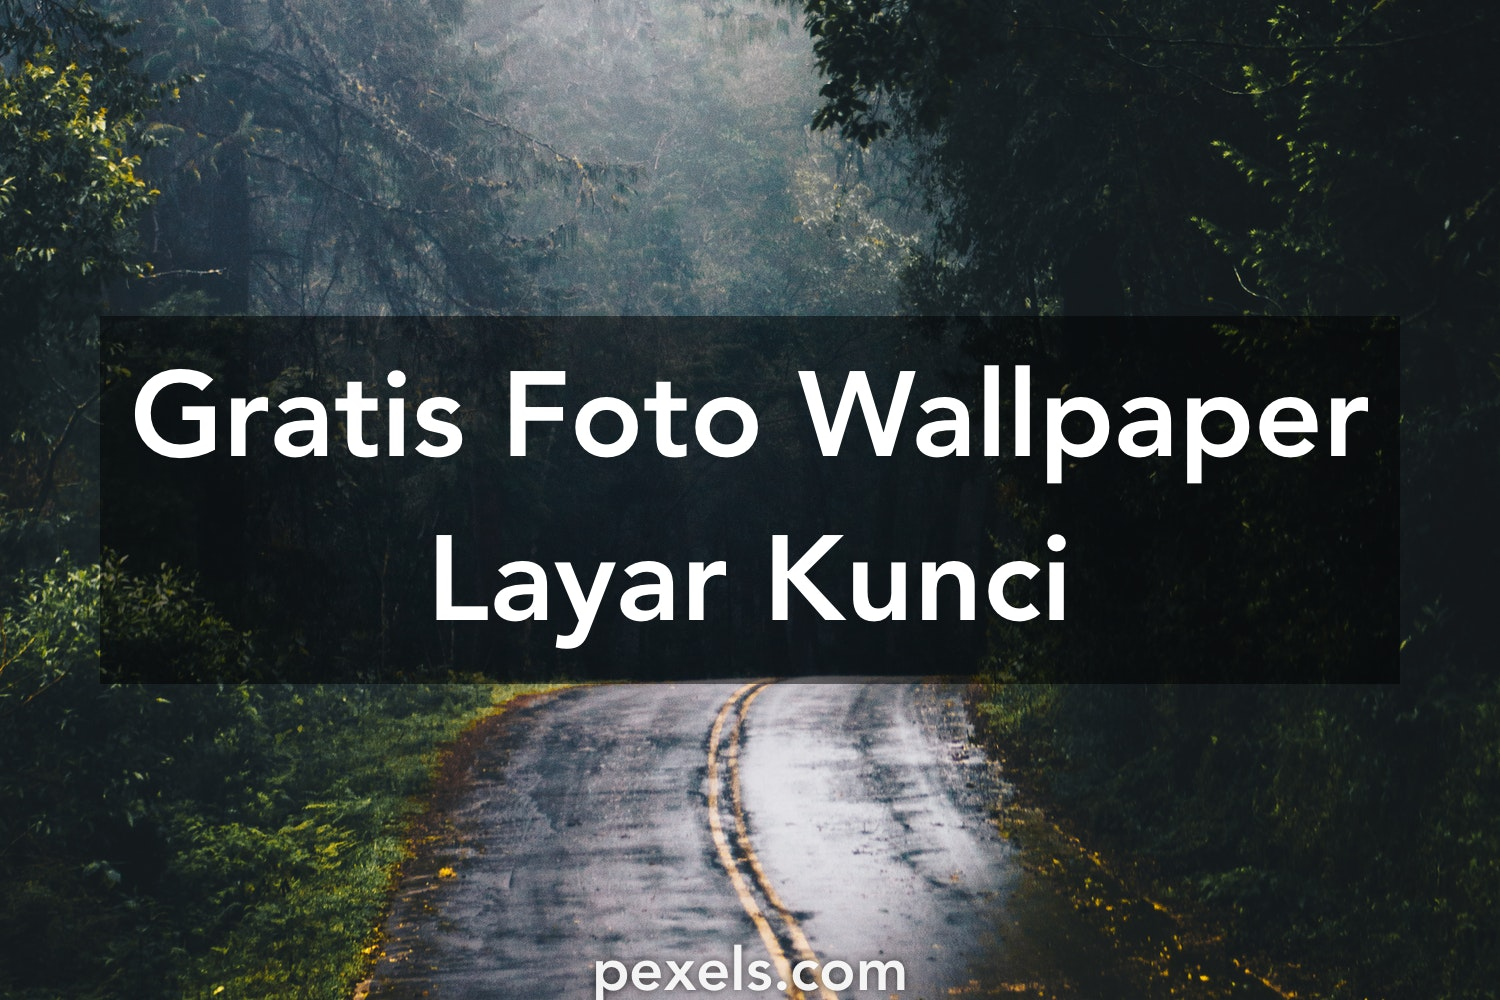 Download 520 Koleksi Wallpaper Iphone Layar Kunci Gratis Terbaik